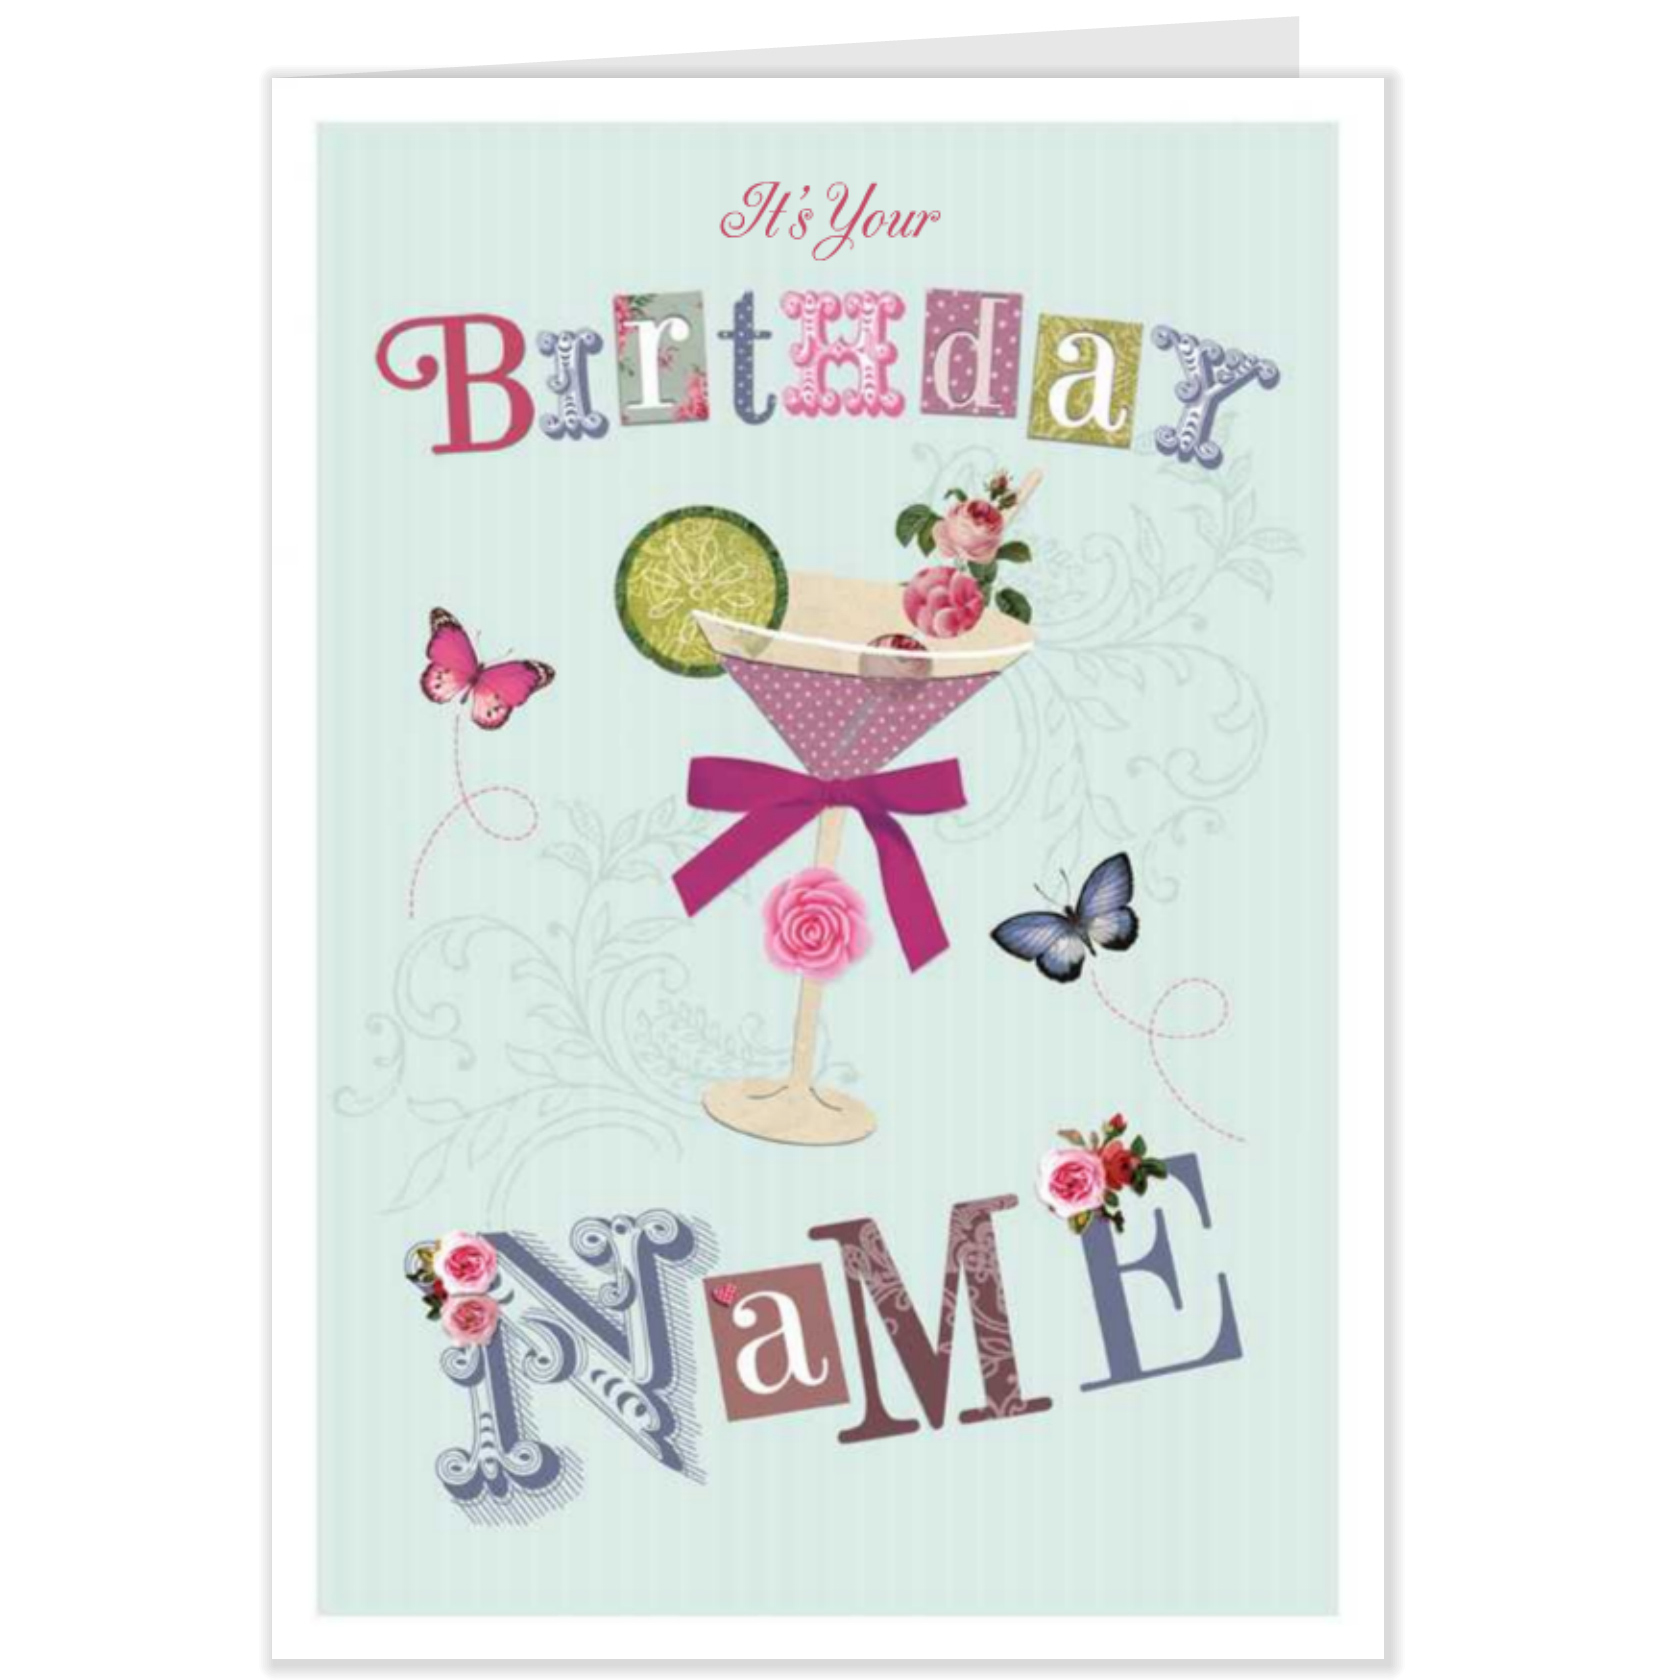 Funny Quotes For Her Birthday Quotesgram: Hallmark Birthday Quotes Women. QuotesGram